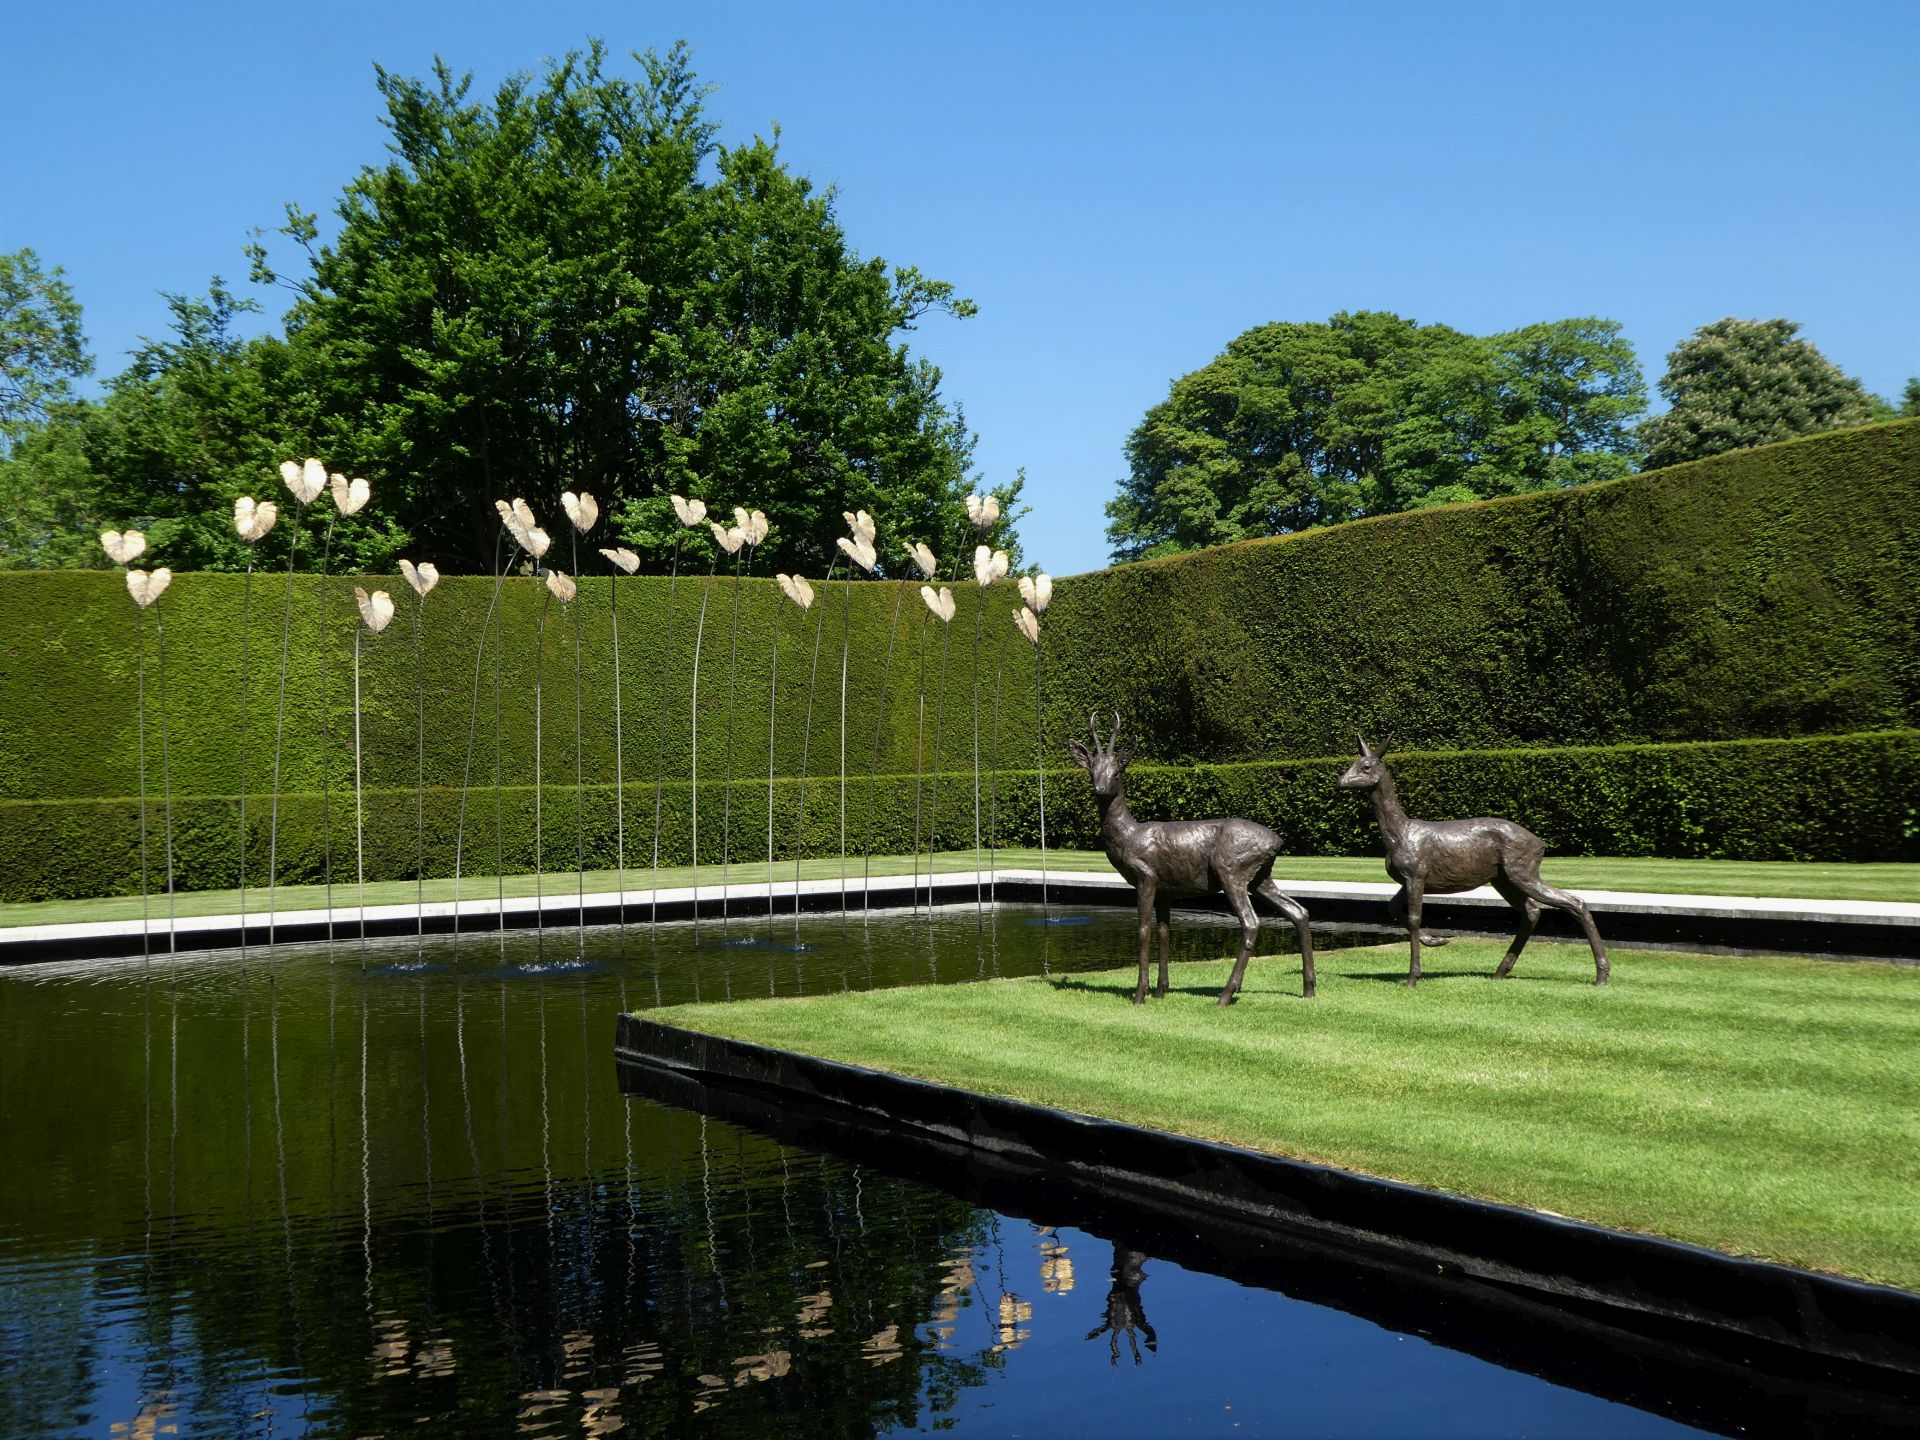 Roe deer in the water garden